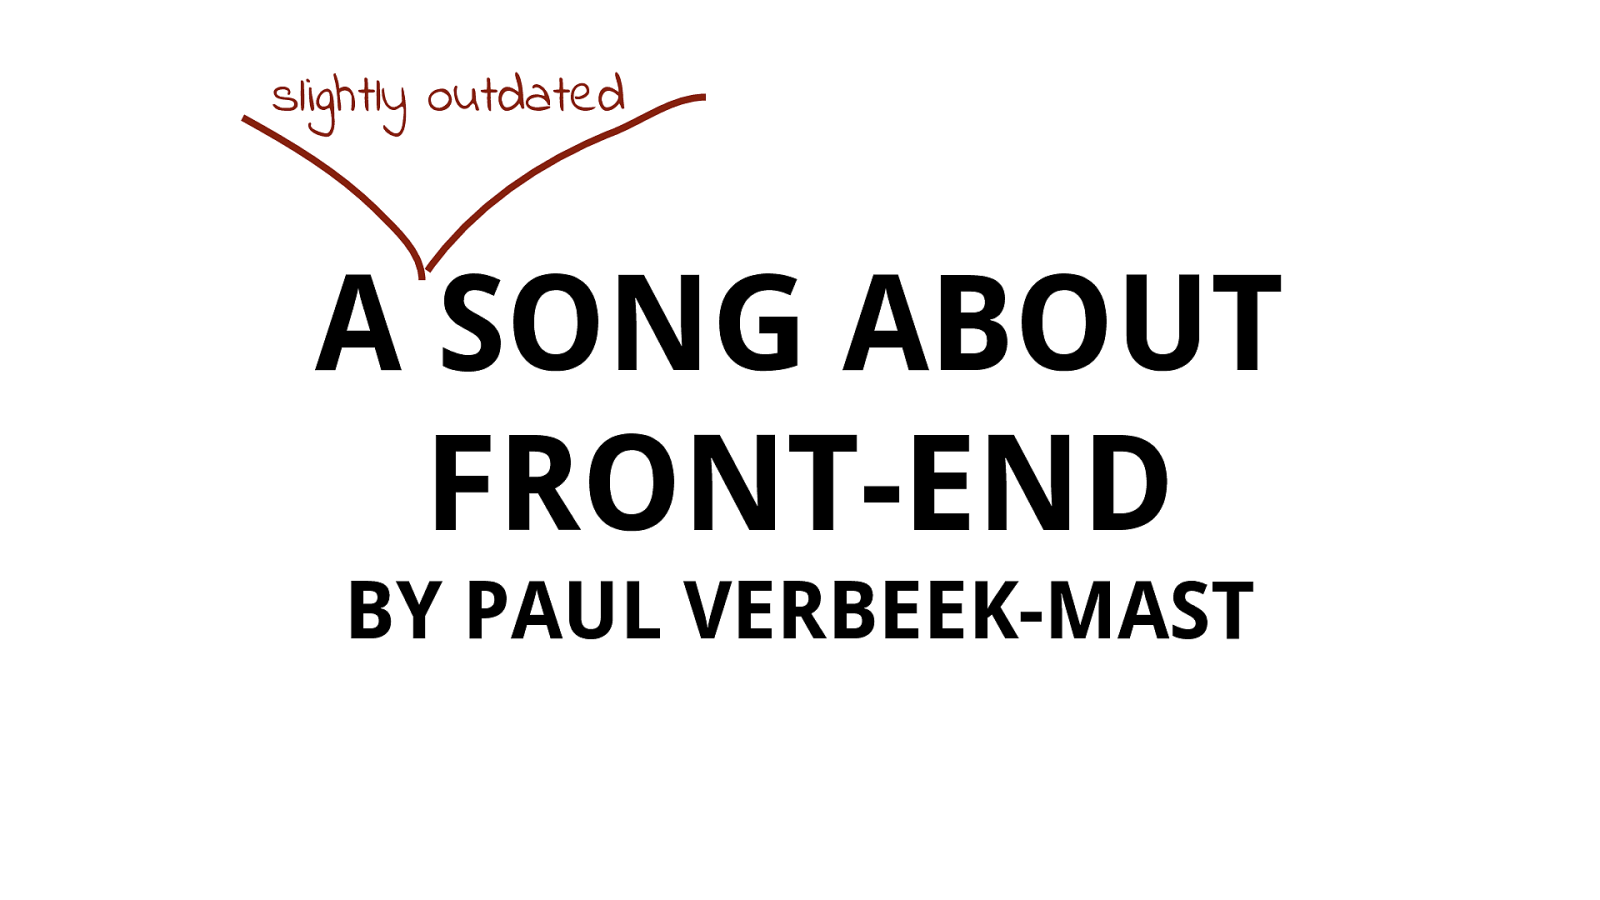 A Song About Front-End